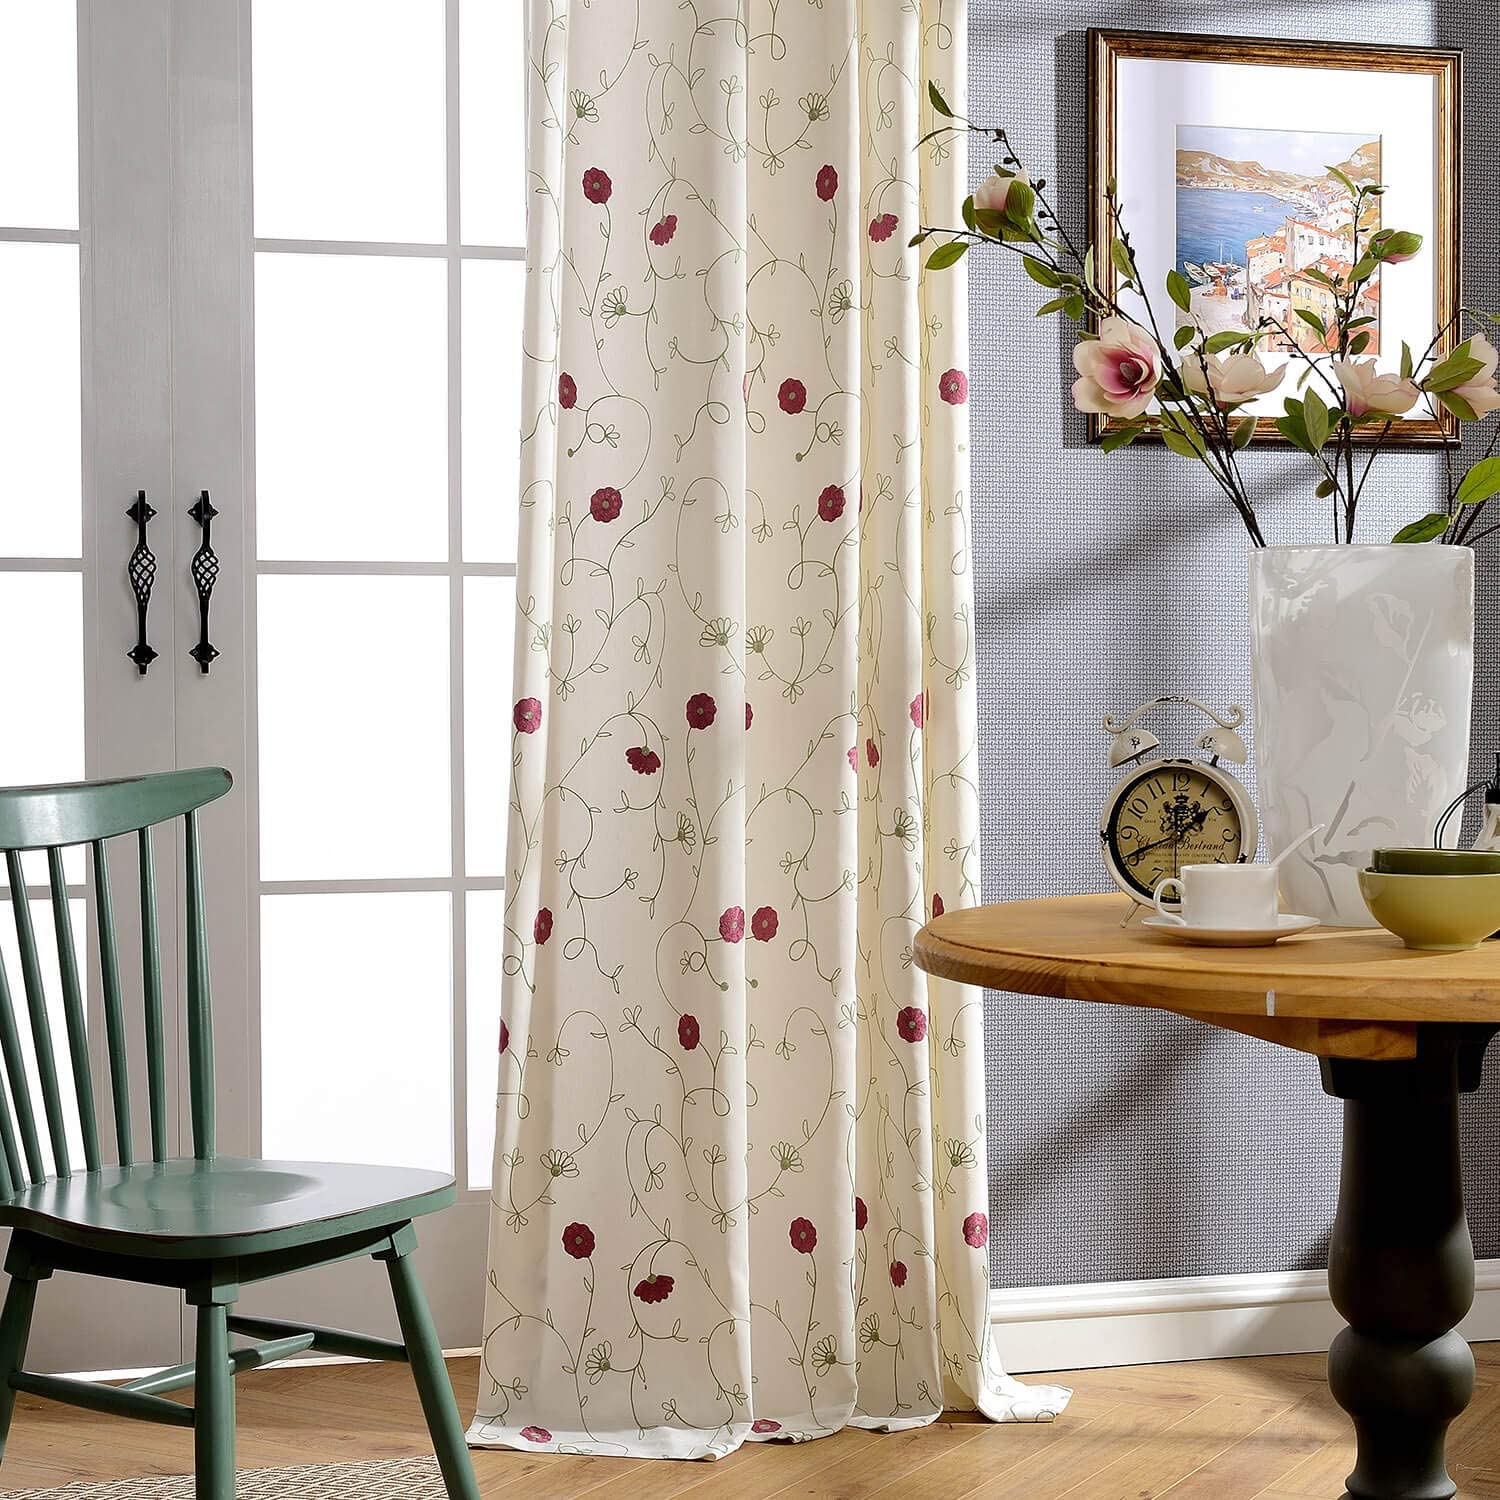 VOGOL European Simple Floral Embroidered Curtains Red Elegant Faux Linen Curtain for Living Room 52x96 Inch, 2 Panels, Top Grommet